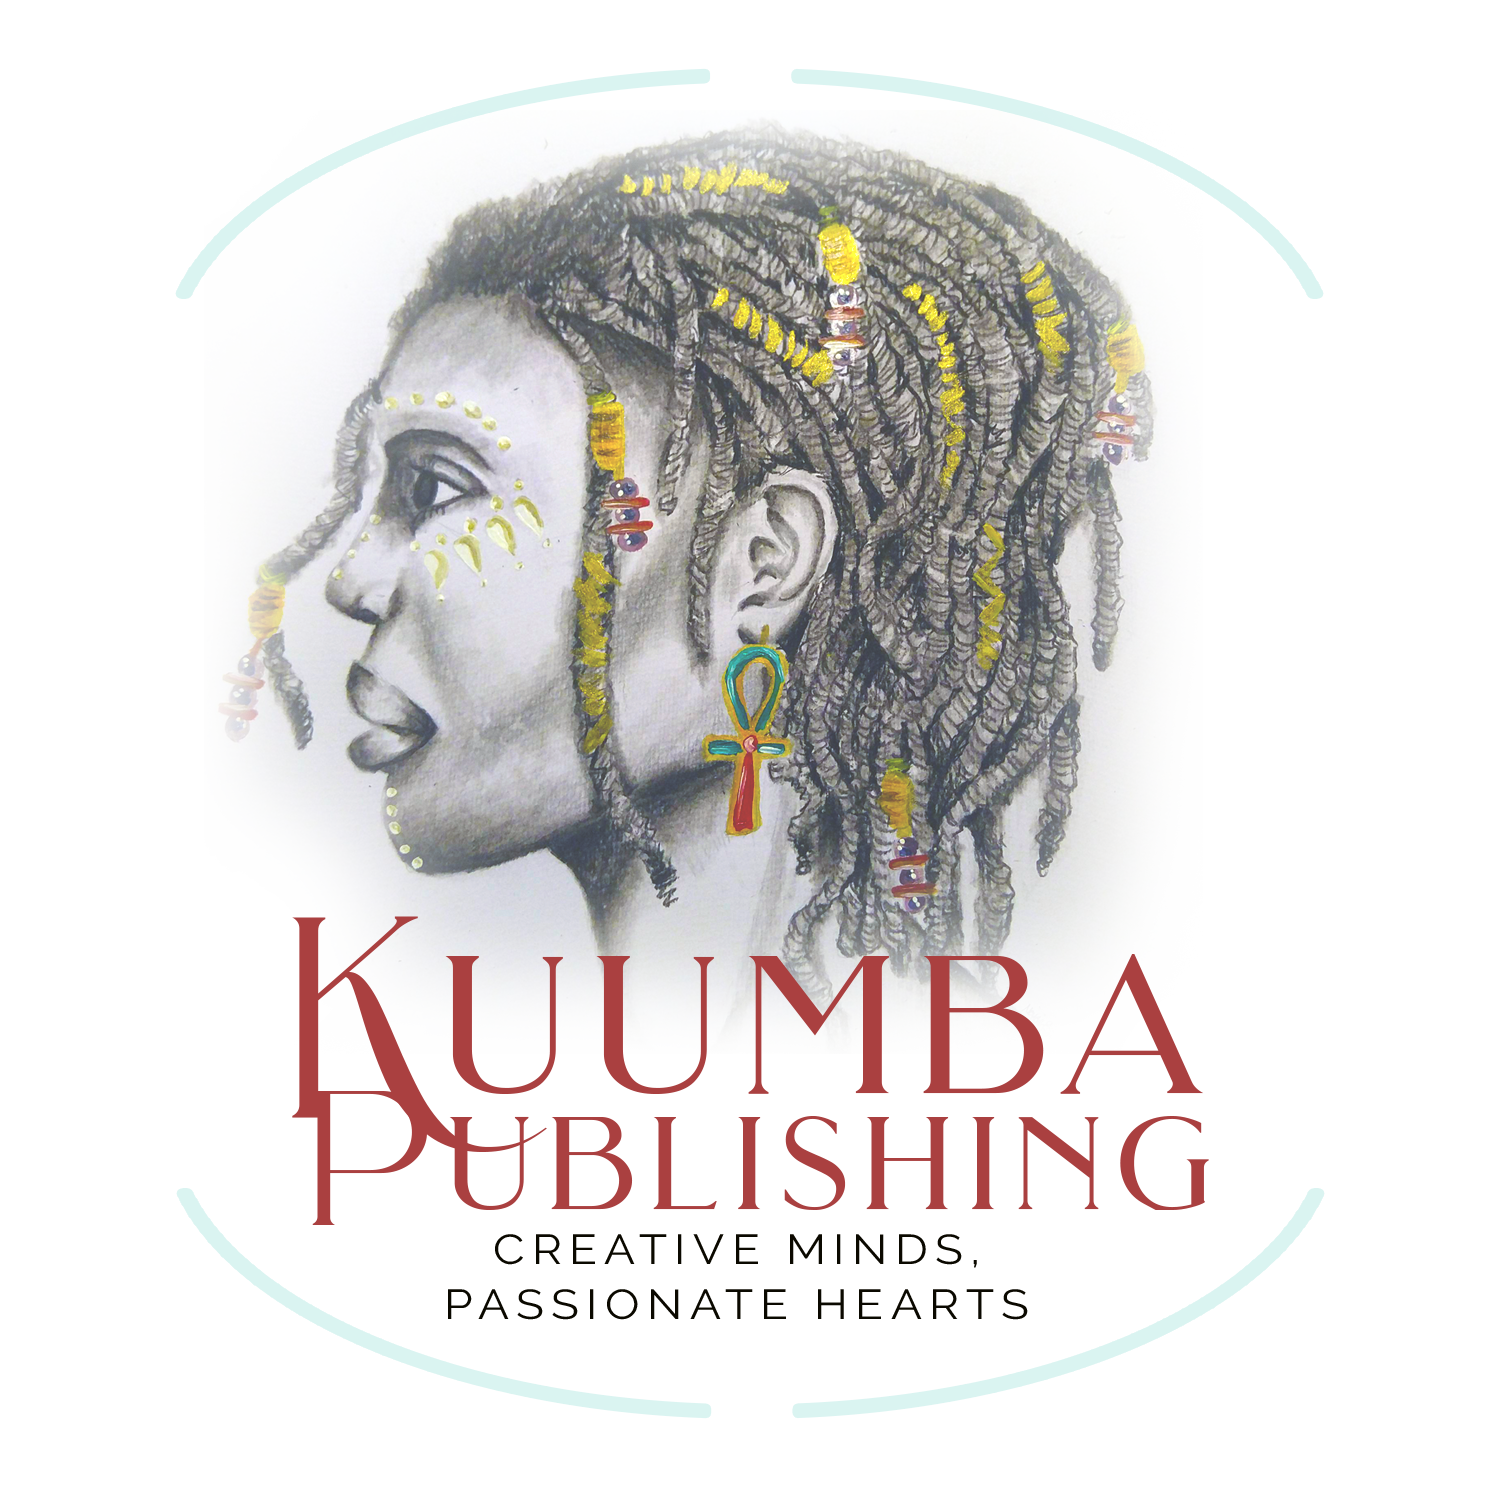 Kuumba Publishing Black Woman Owned Publishing company by ND Jones